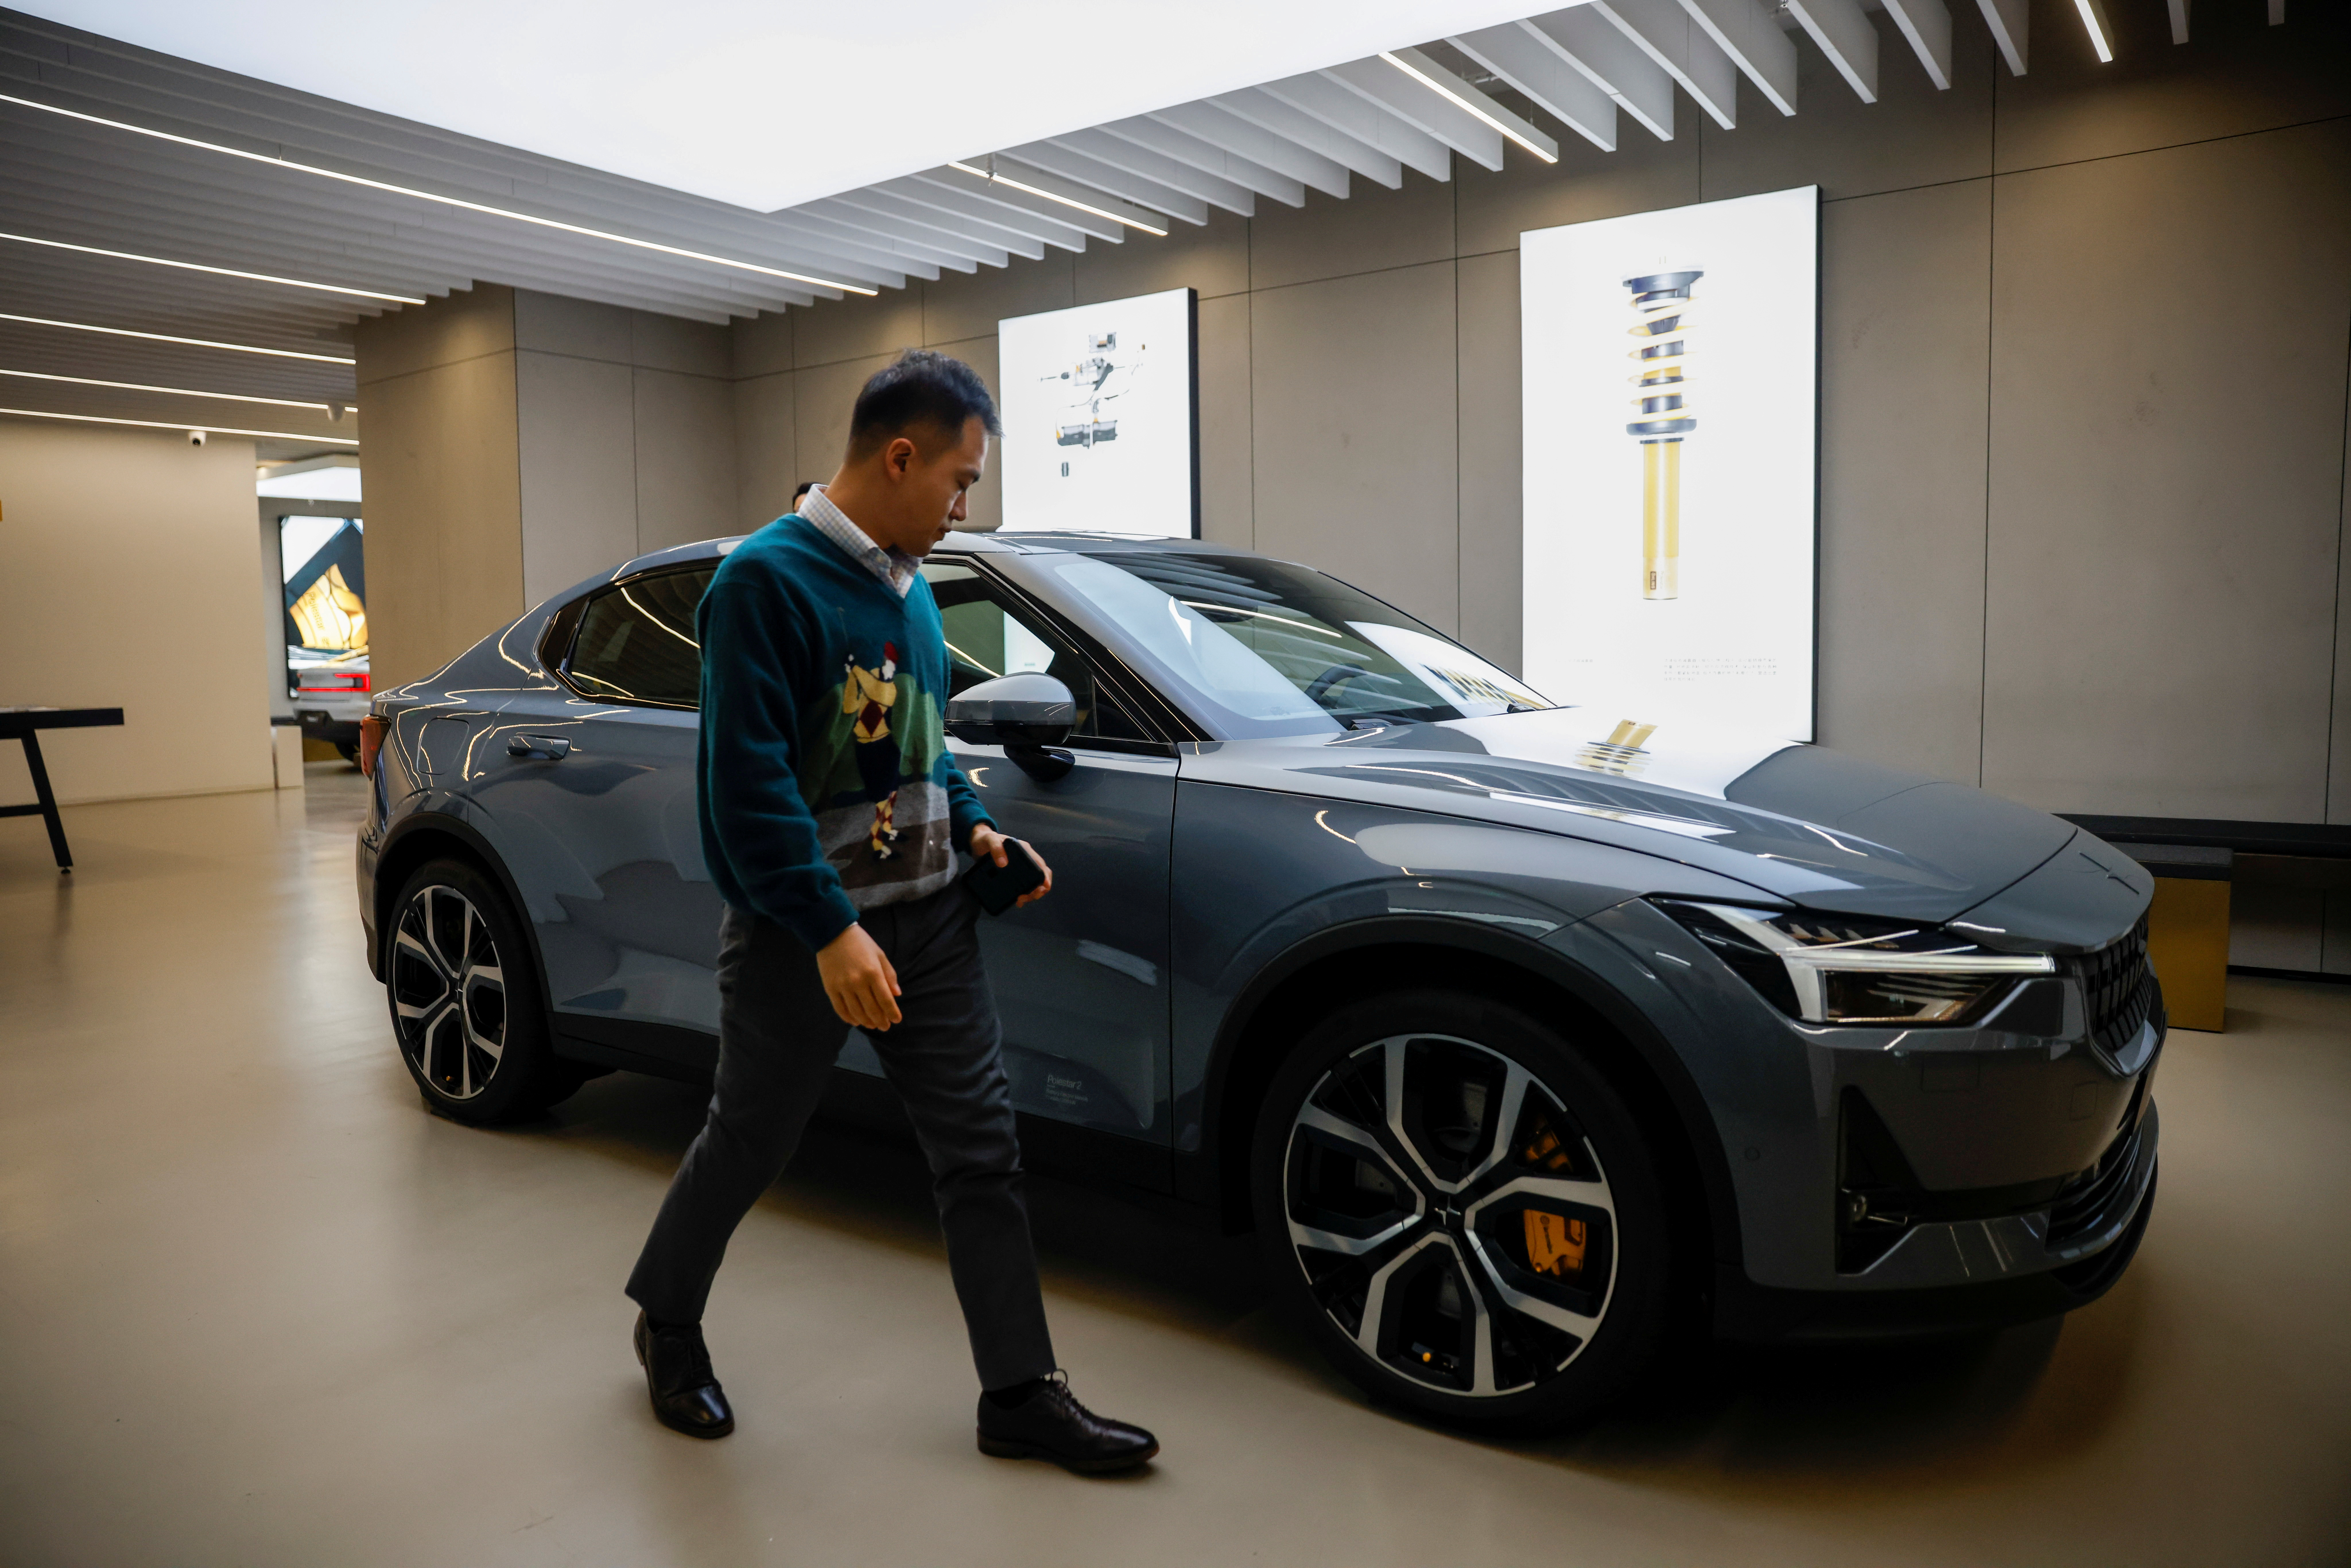 The Polestar 2 electric car is displayed at a company store in Shanghai, China March 8, 2021. REUTERS/Aly Song/File Photo